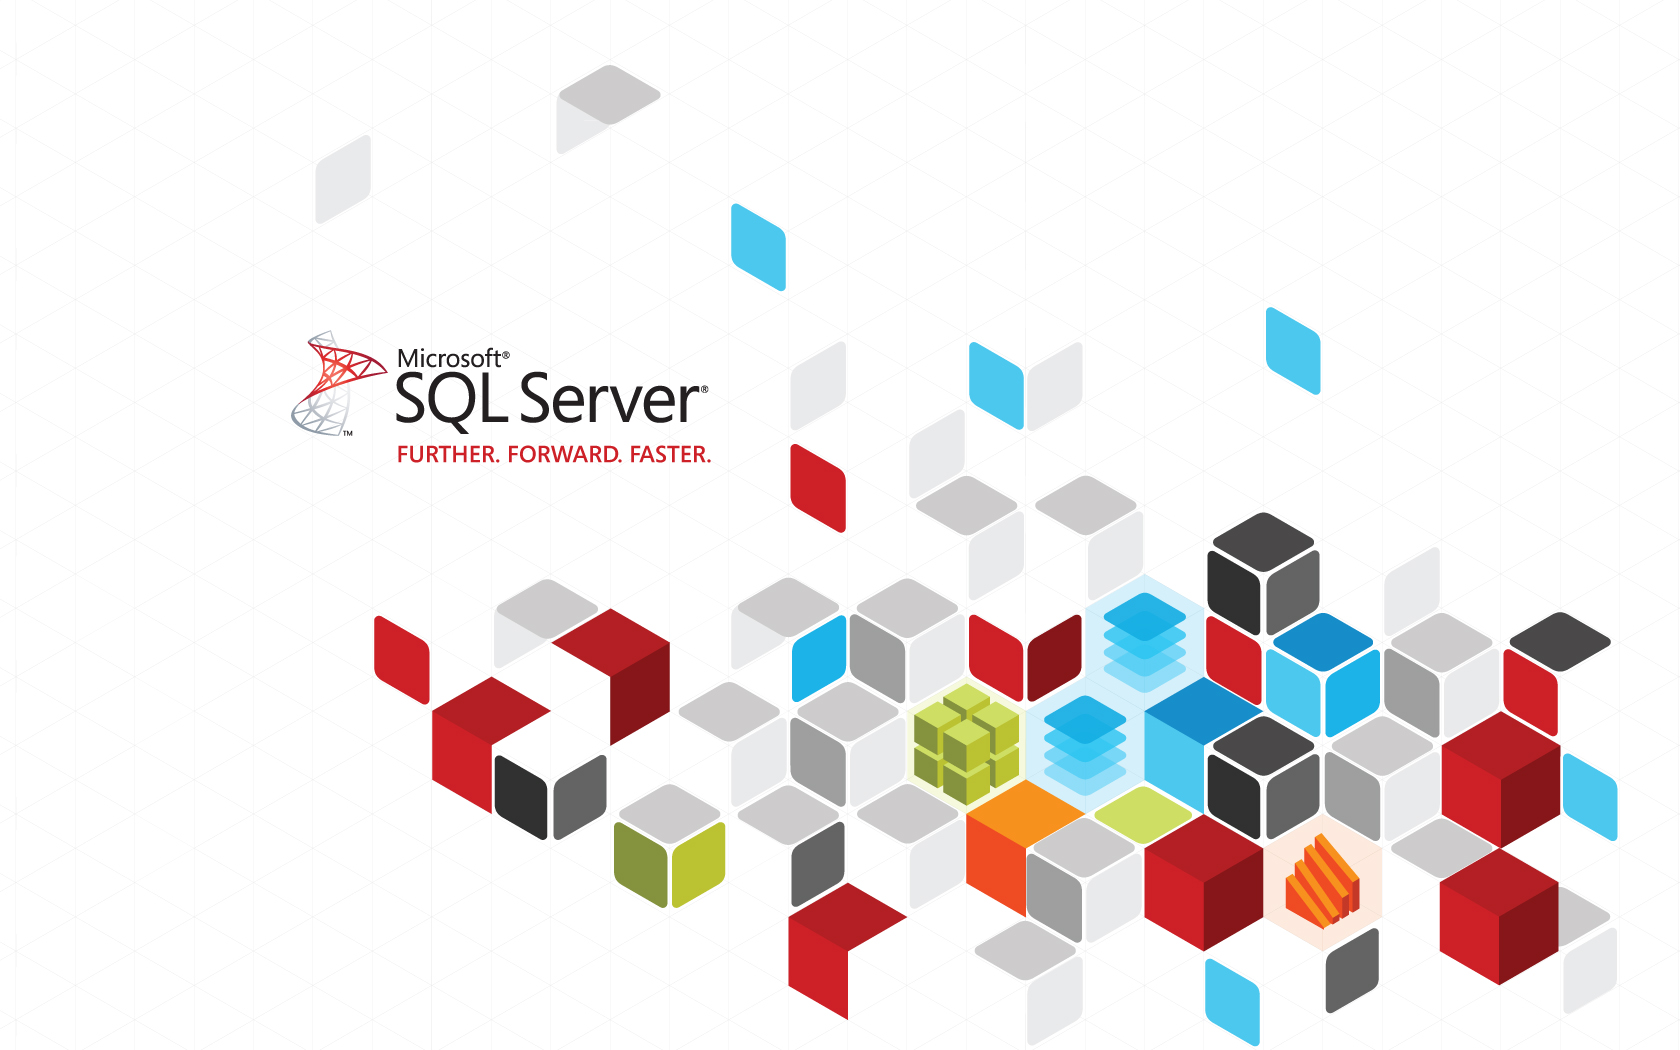 MS SQL Server connection via JDBC